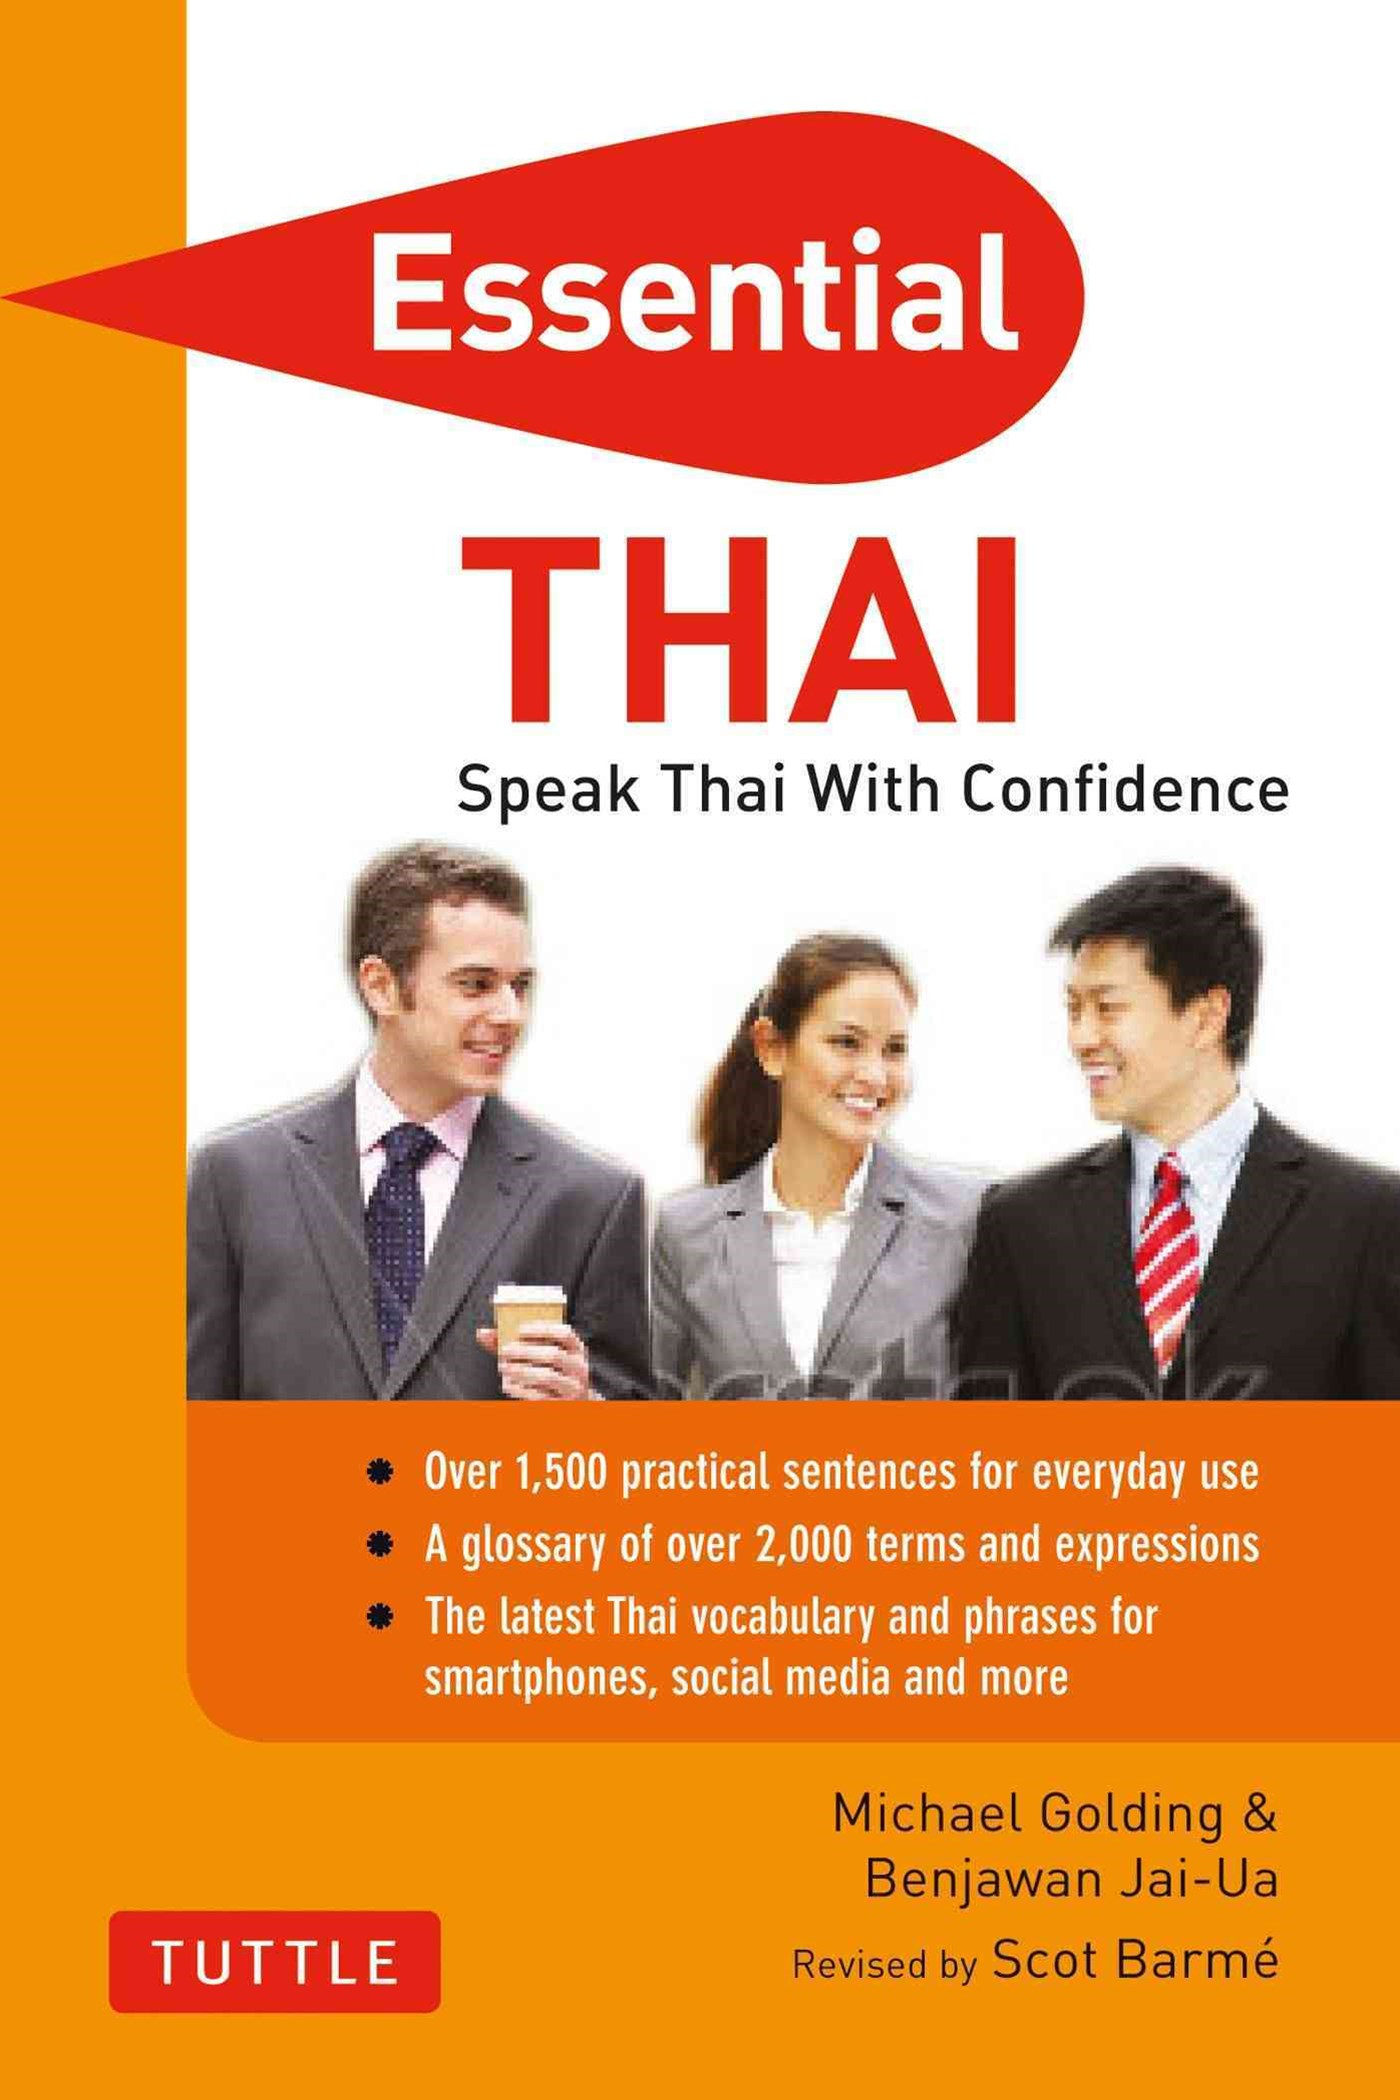 Essential Thai